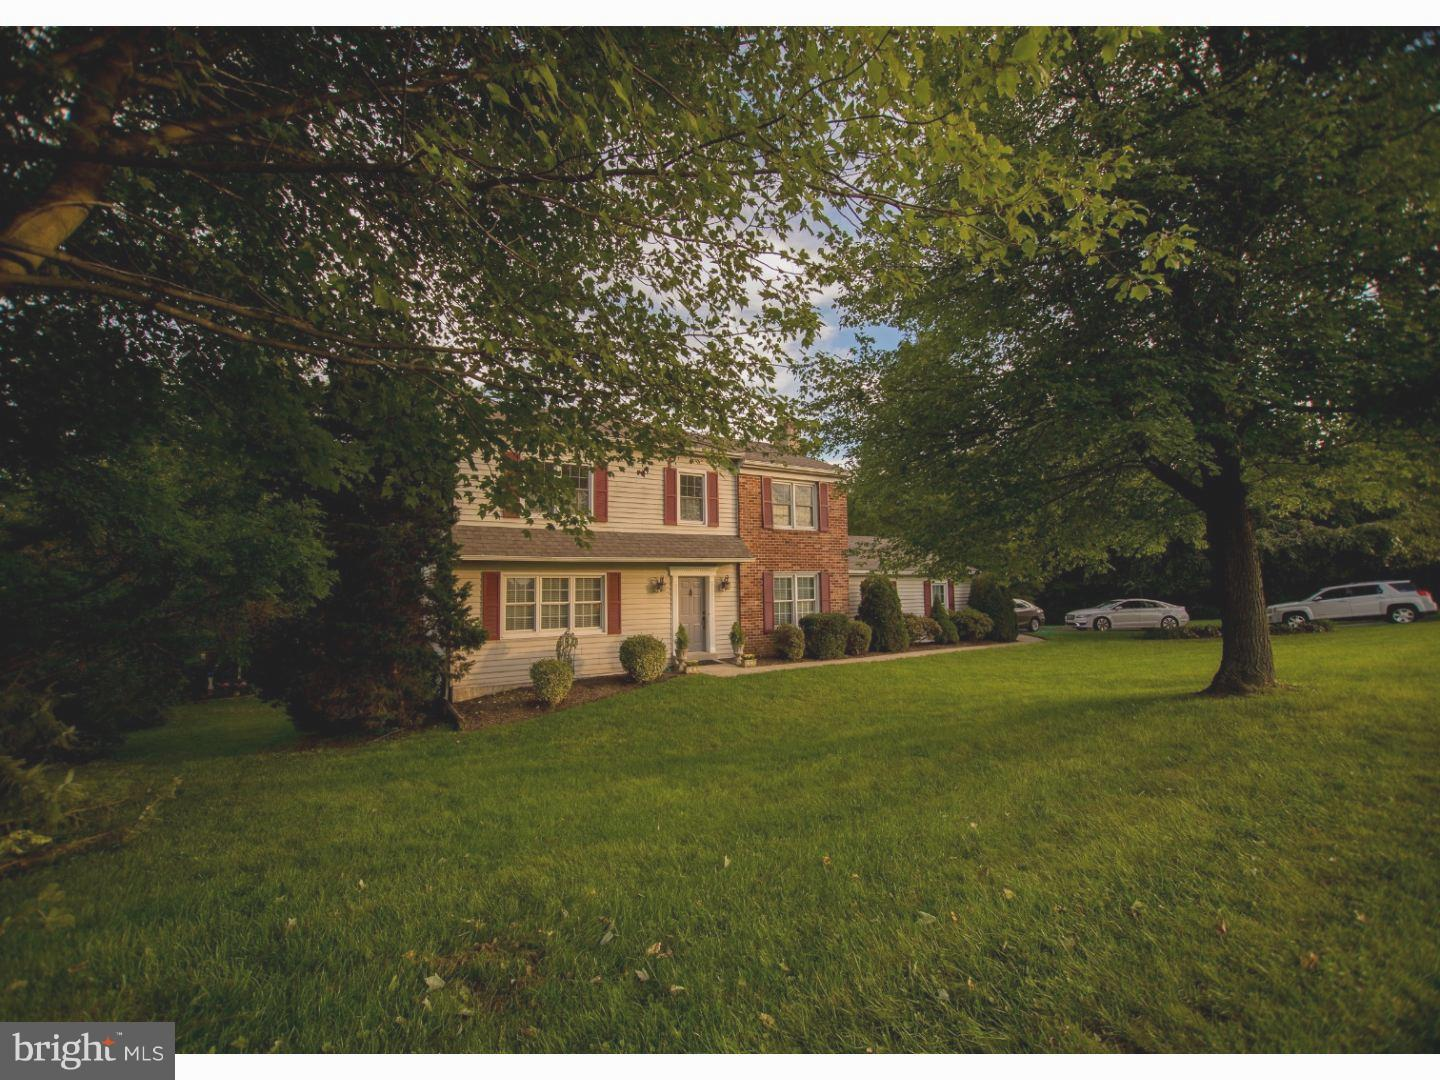 2116 OLD ARCH ROAD, NORRISTOWN, PA 19401